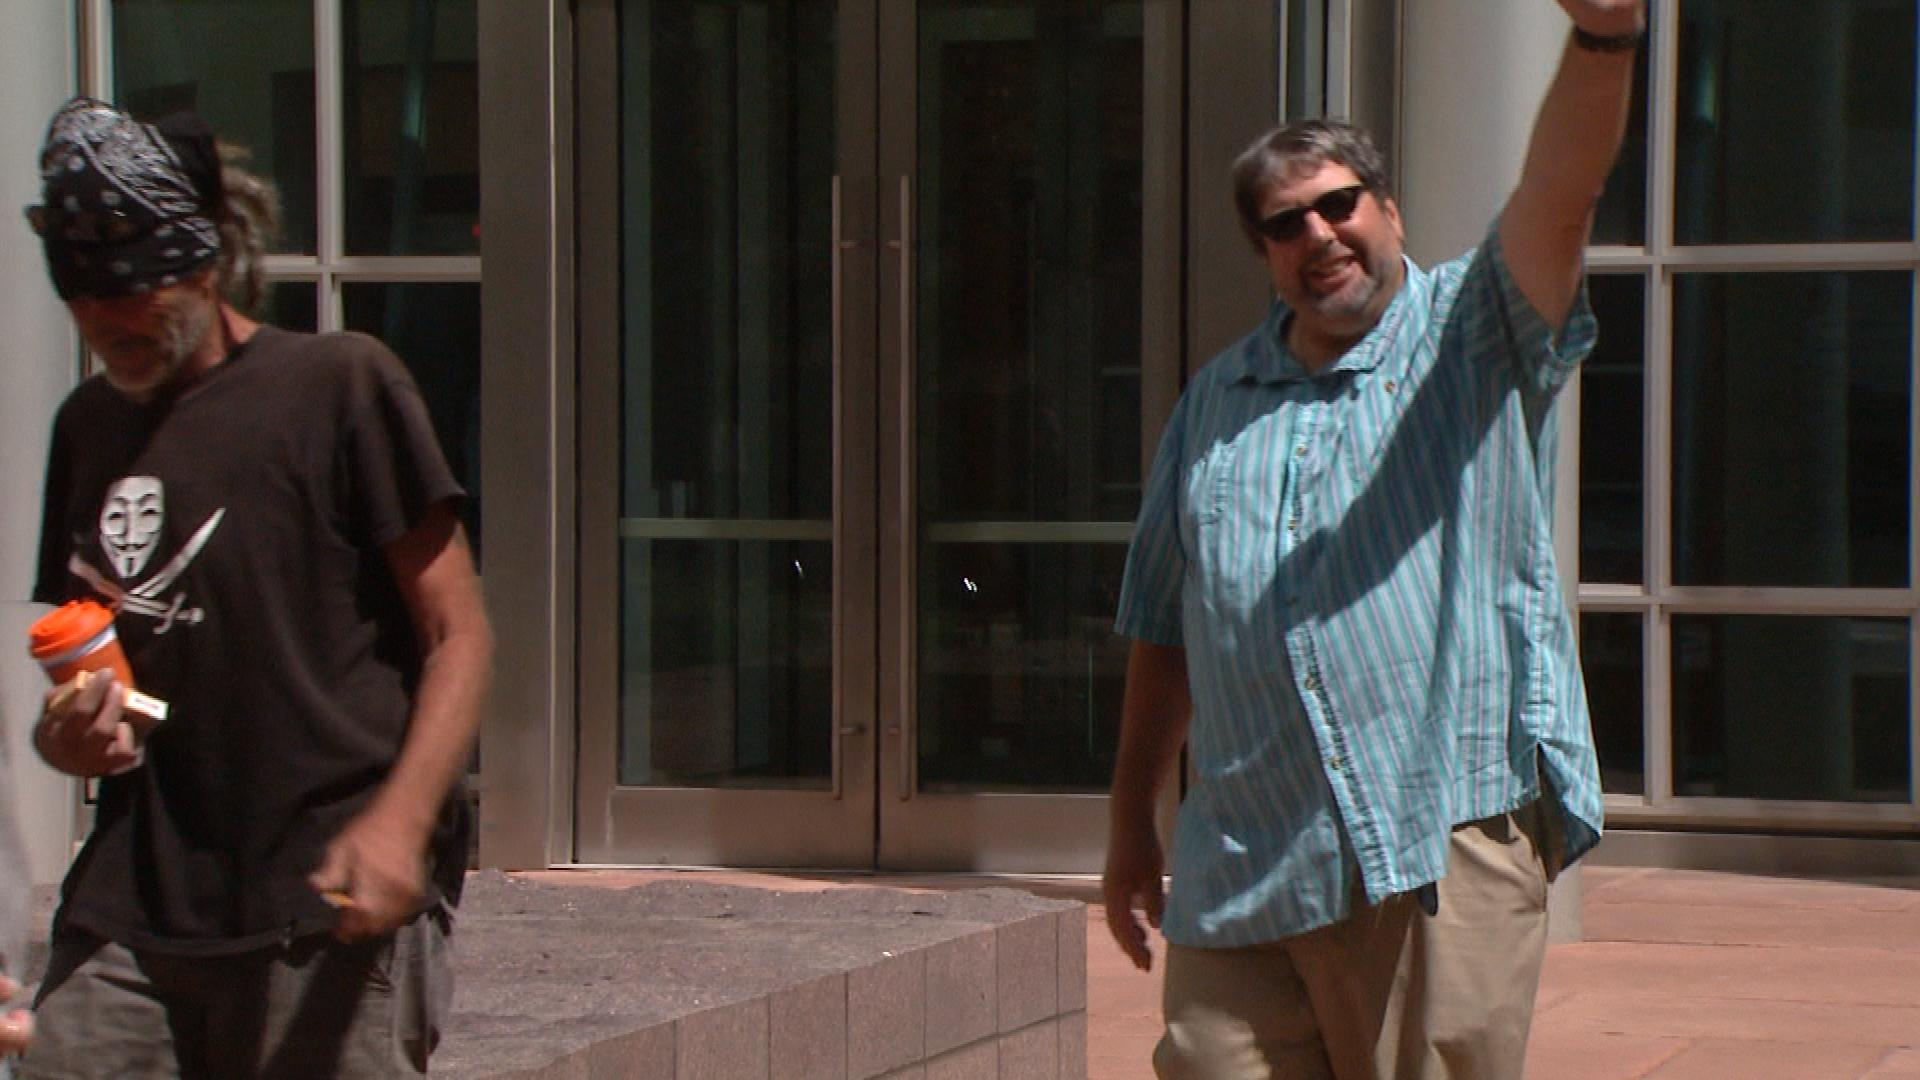 Mark Iannicelli leaving court (credit: CBS)